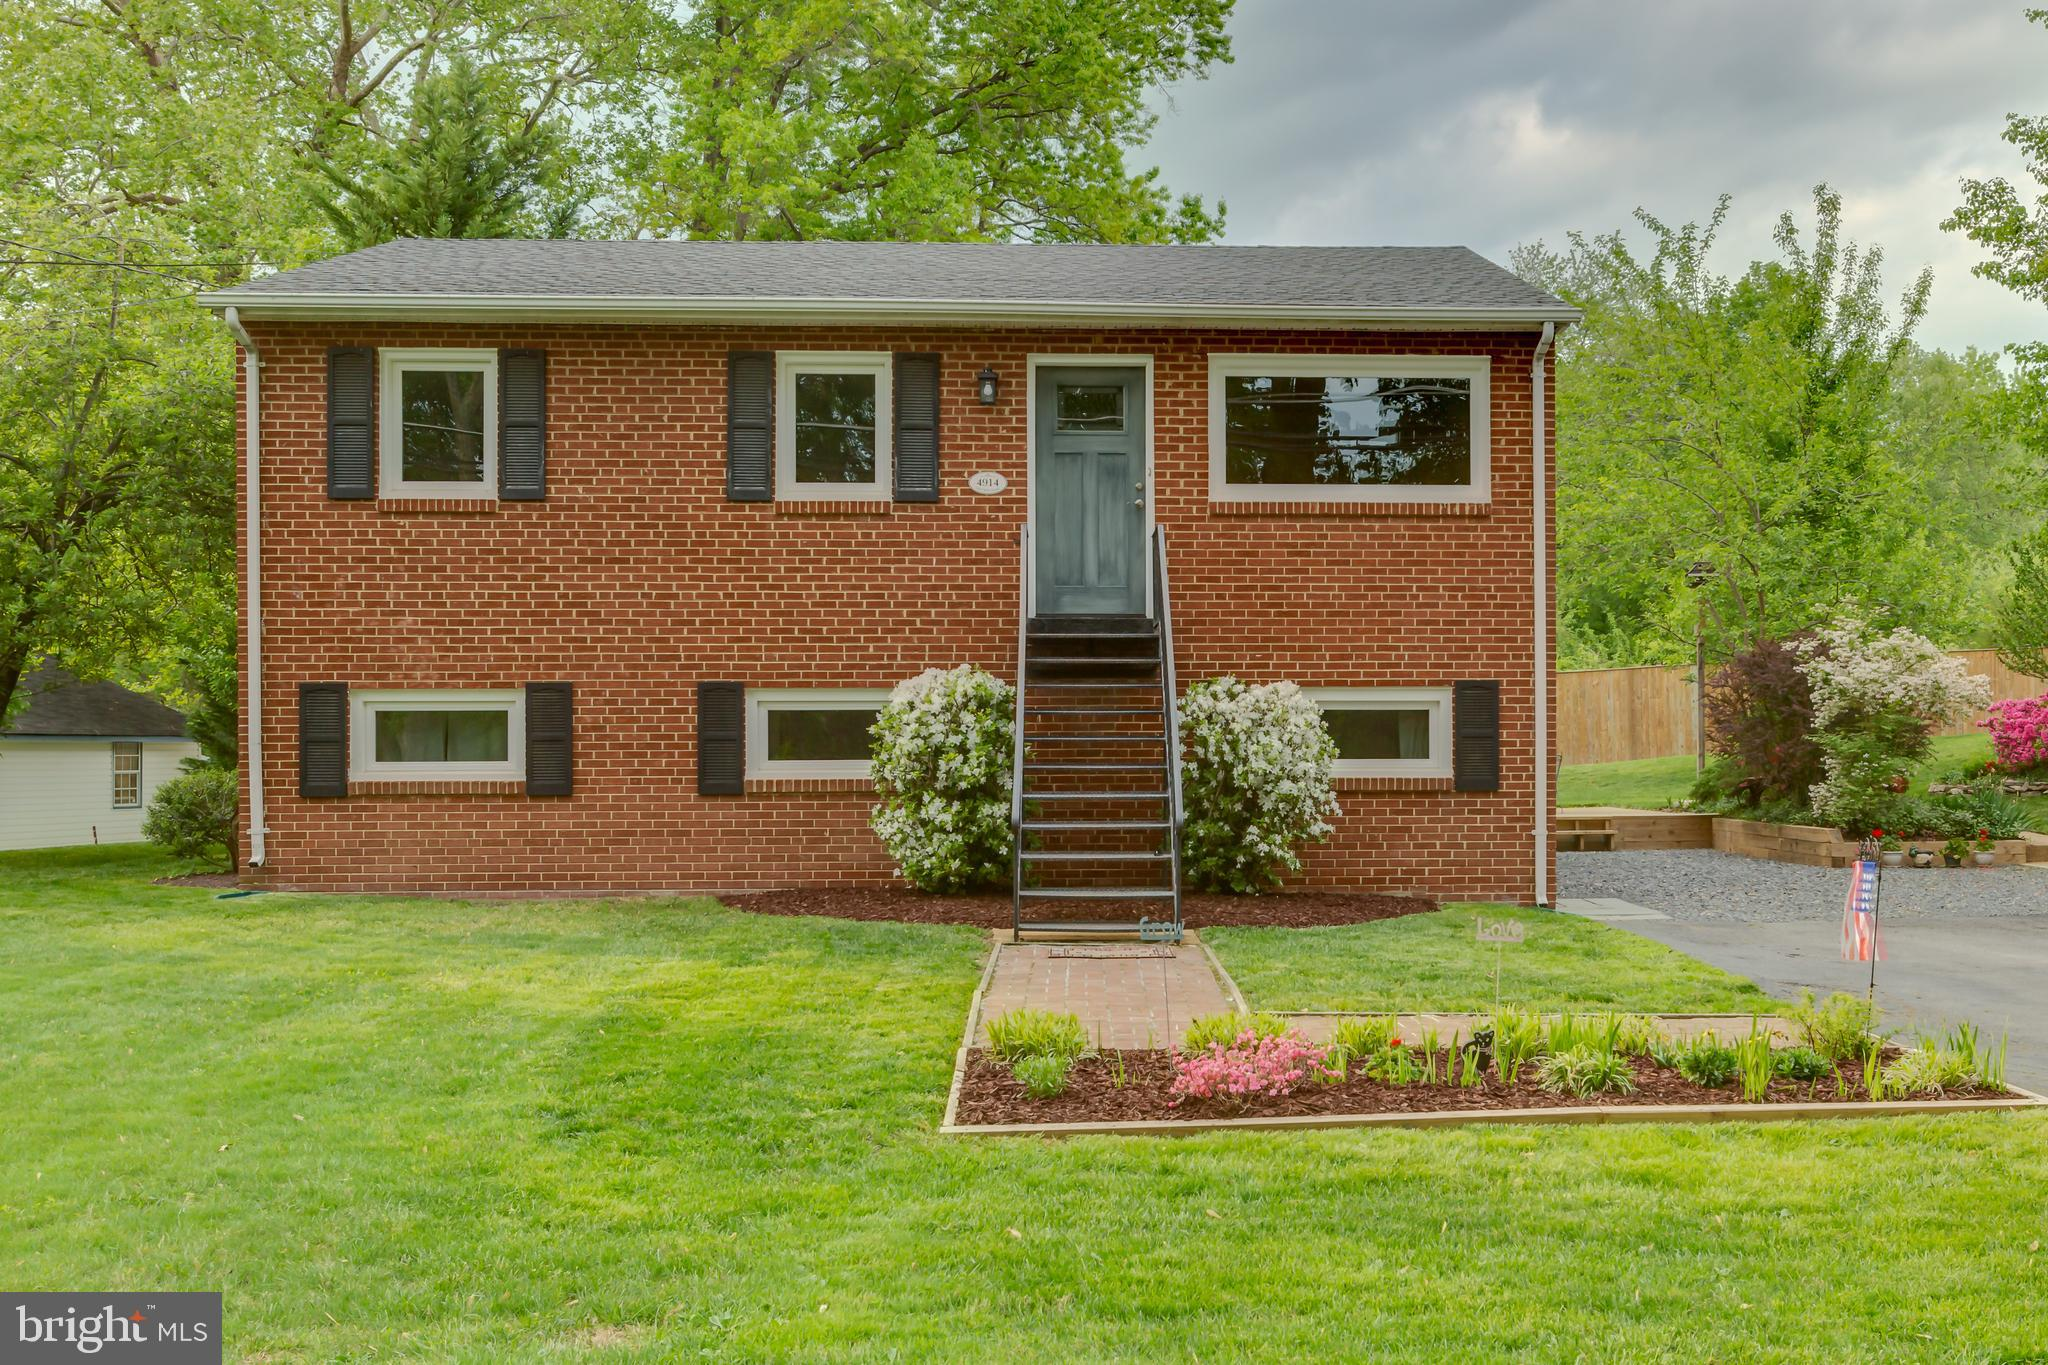 You~ll be impressed by this nicely maintained and updated brick home in Mount Vernon located on over a half-acre lot across from the Mount Vernon County Club.  Beautifully landscaped yard with fruit bearing trees and plenty of space to add an addition or garage.  Enjoy spending time in the large sunroom with newly installed roof in 2019 and separate heating/cooling unit and wood-burning stove. Updates within the last year include beautifully refinished hardwood floors on upper level and newly installed vinyl plank flooring in the basement, renovated bathrooms, new windows, new water heater, new furnace, freshly painted throughout, LED recessed lighting throughout, new washing machine. Roof replaced in 2016. Large shed with electric and a porch. Lower level with separate entrance would be ideal for in-laws or to share with a tenant or roommate. Owners boast that the huge over-sized driveway can fit 12 cars! Close to Ft. Belvoir, GW Parkway, and commuting options.  Home warranty included!